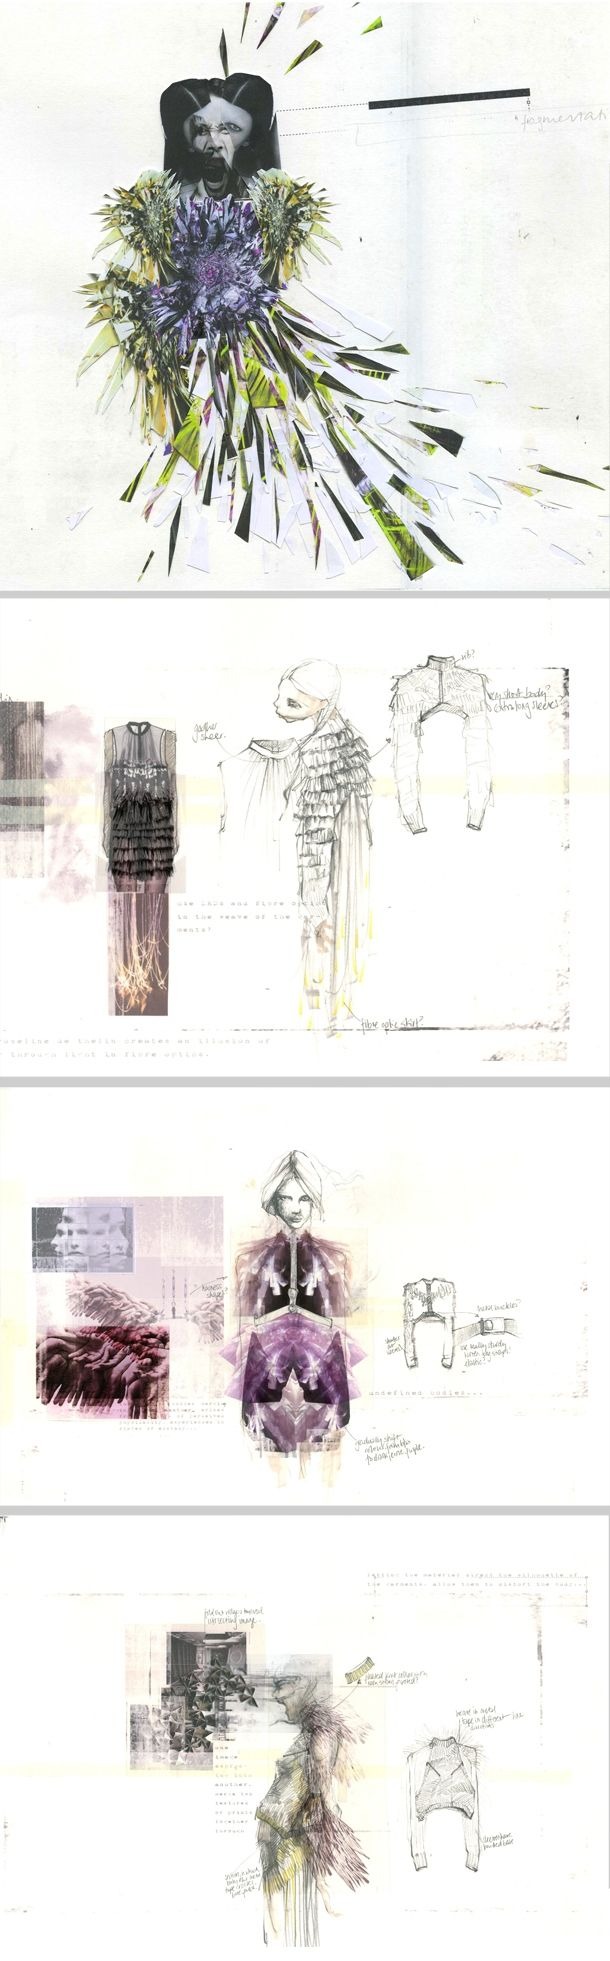 Fashion design sketchbook - concepts, drawings, design development - Jousianne Propp